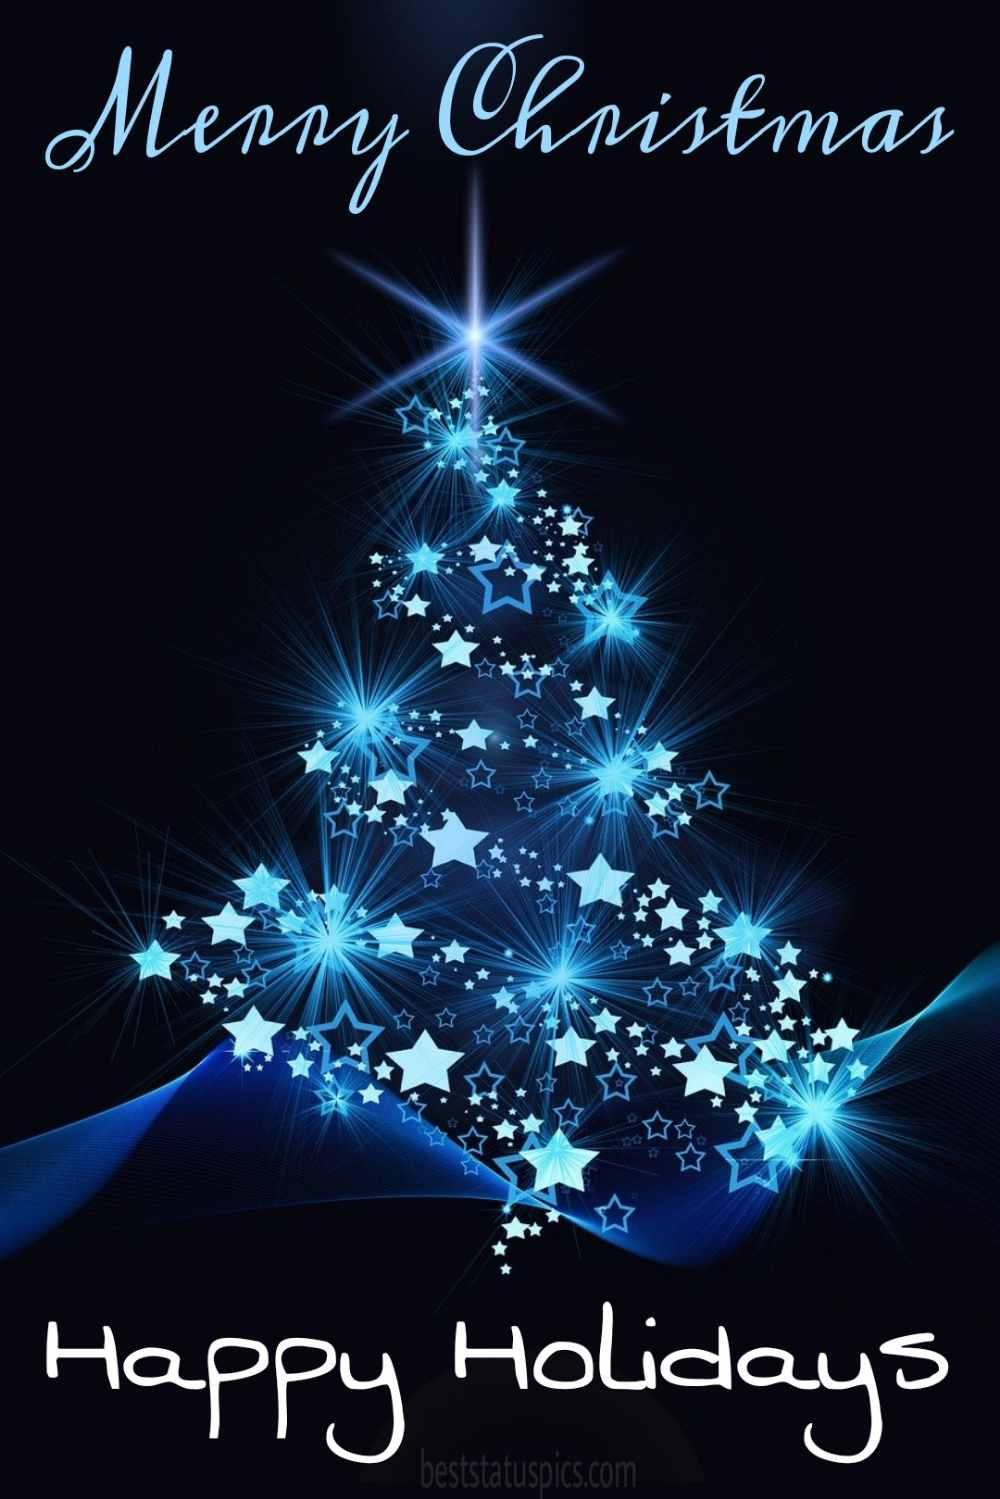 Happy Holidays Merry Xmas 2022 wishes images HD with Christmas tree for Instagram story